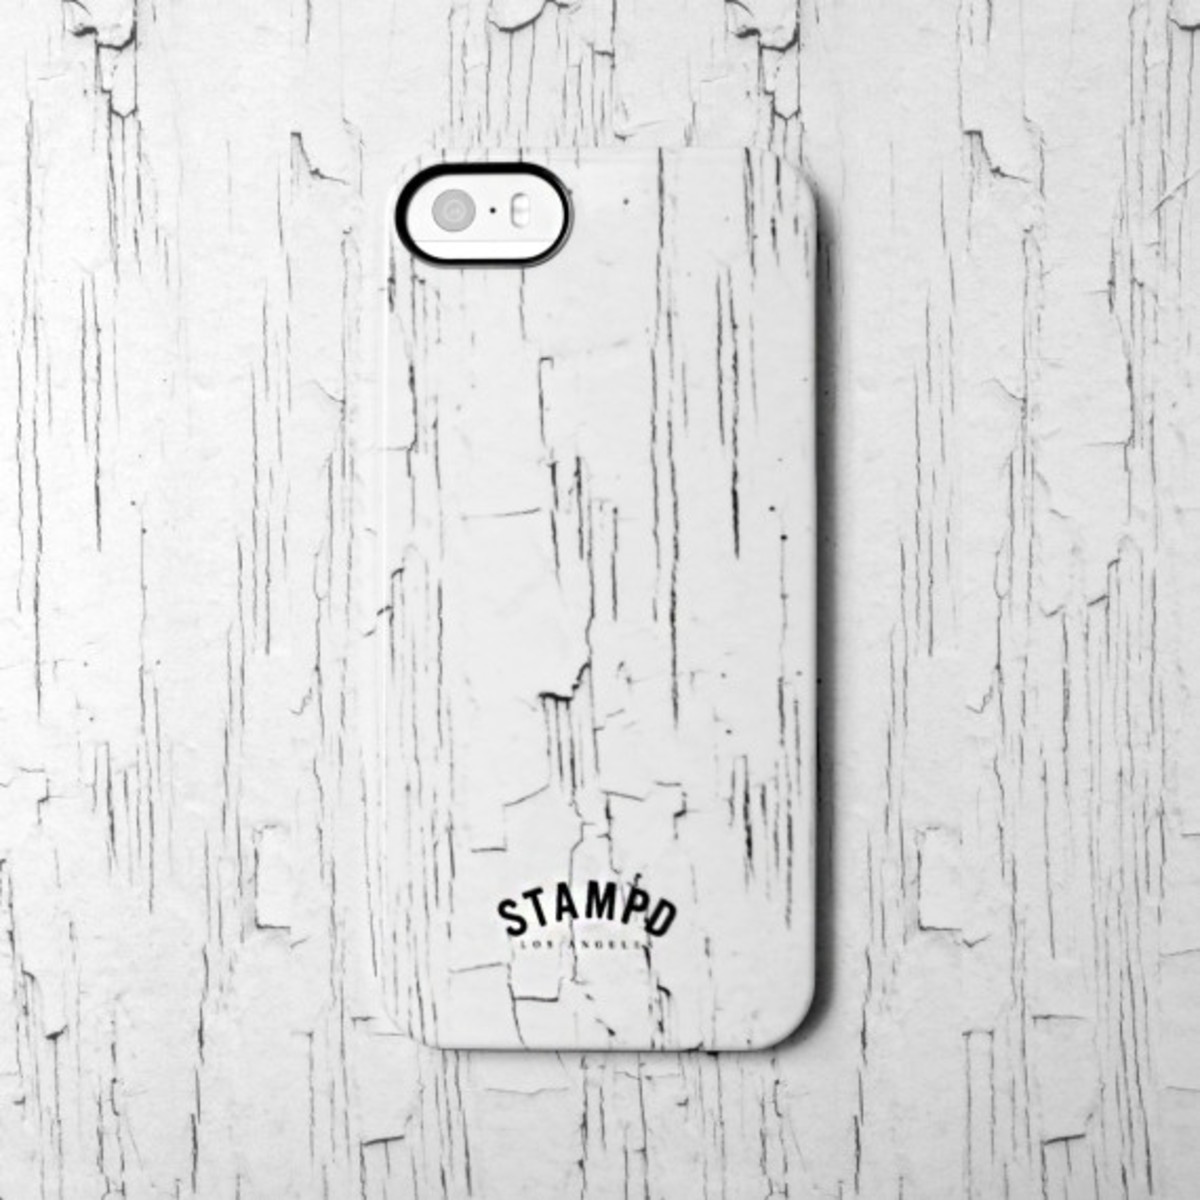 stampd-iphone-5-case-02